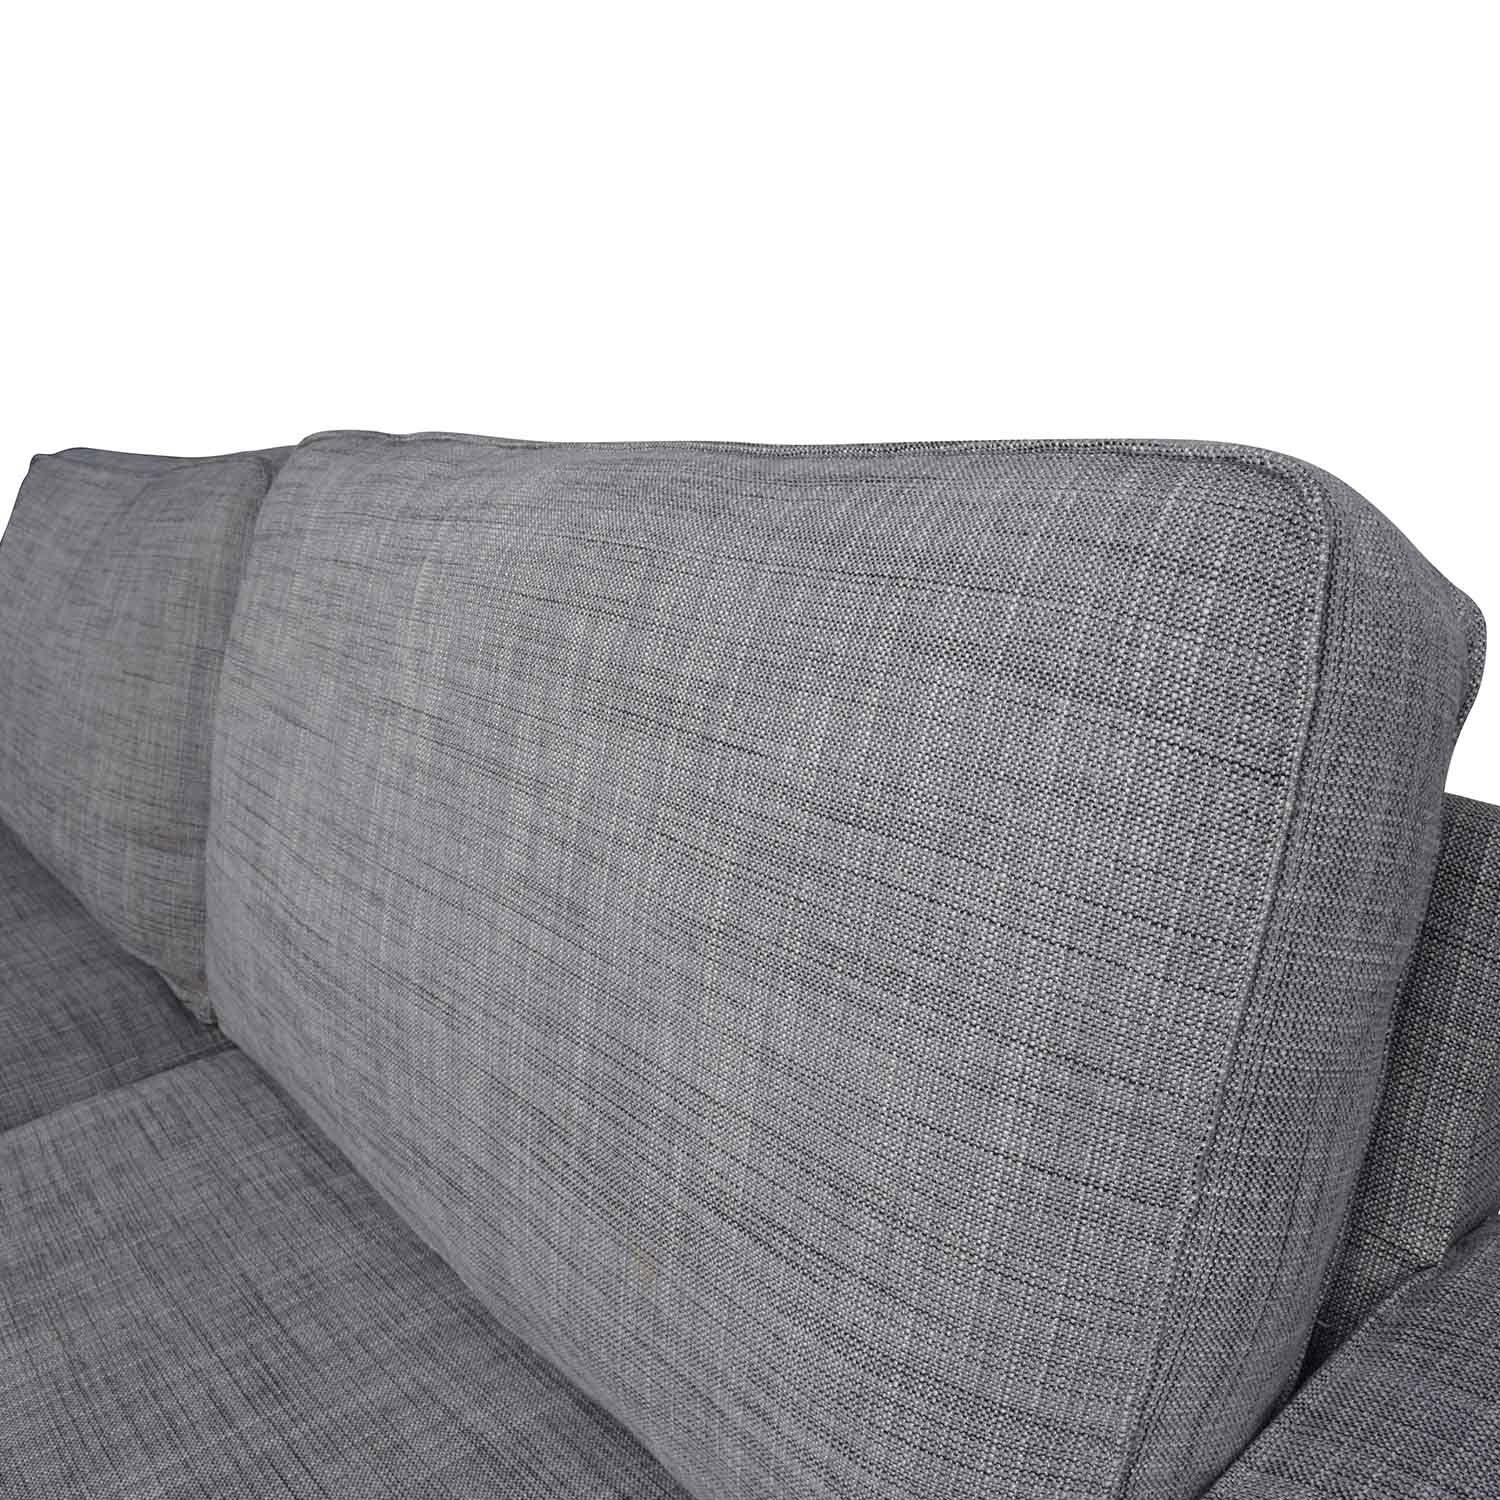 top kivik sofa ikea online-Awesome Kivik sofa Ikea Concept